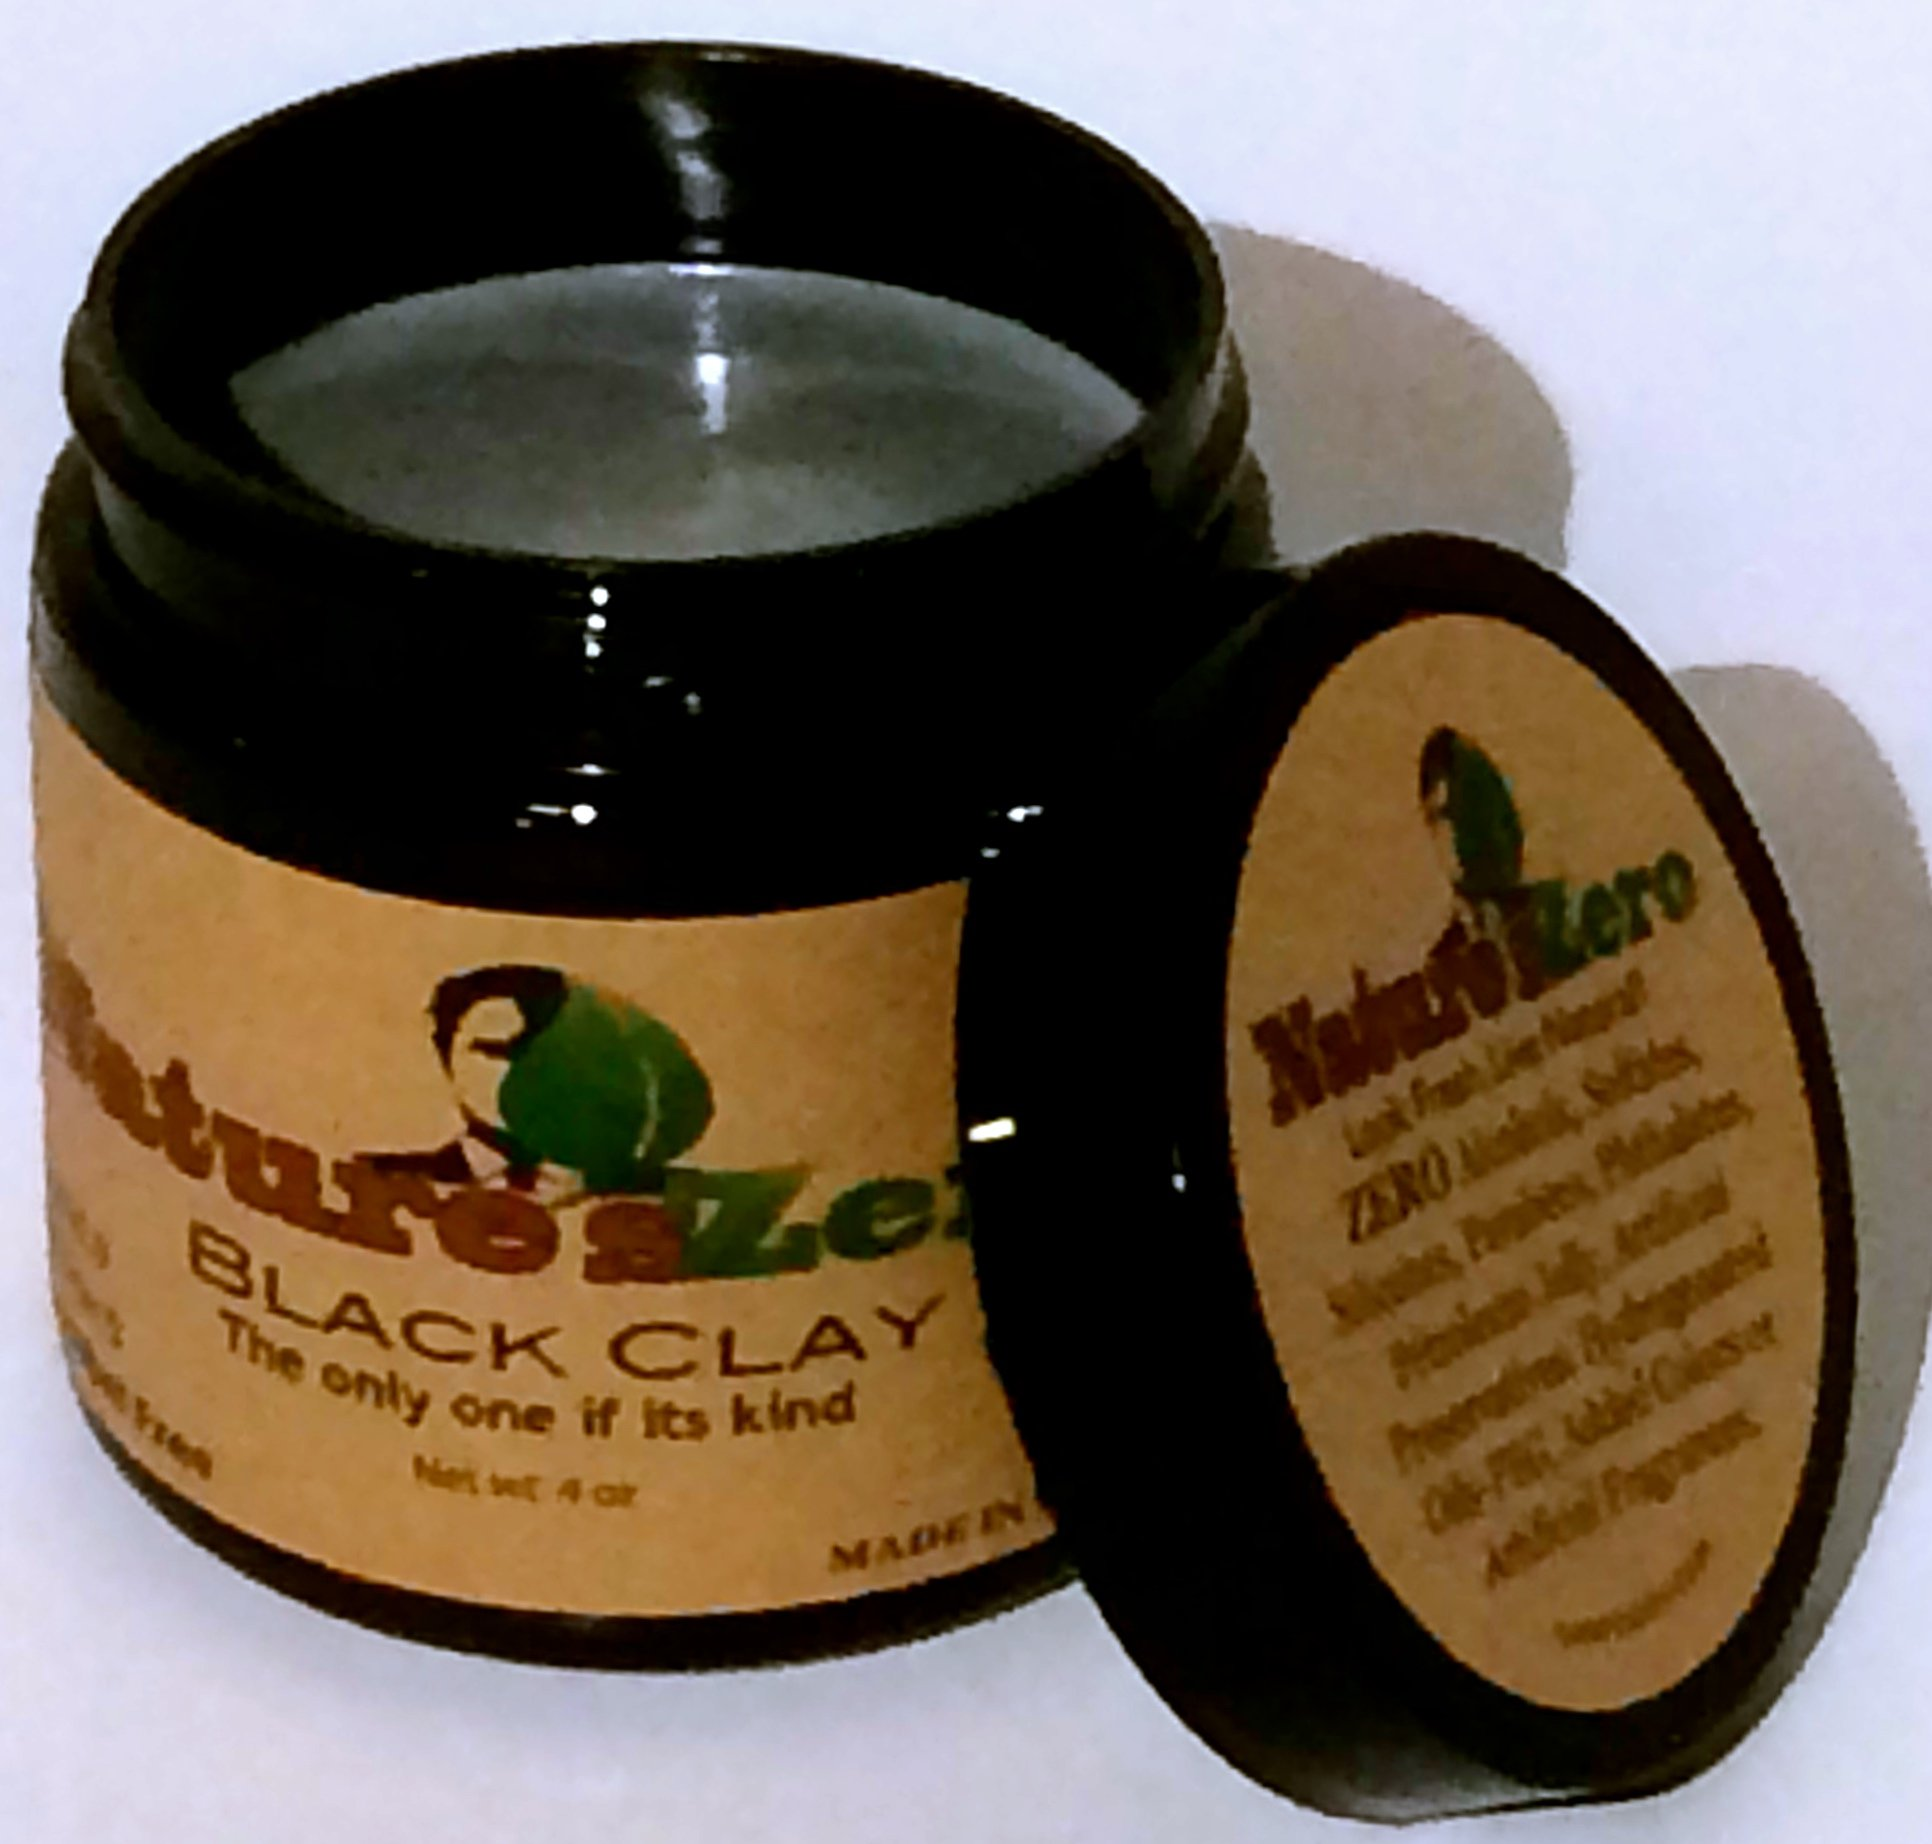 NATURE'S ZERO All-Natural, Handcrafted 4-Ounce Black Clay by Nature's Zero